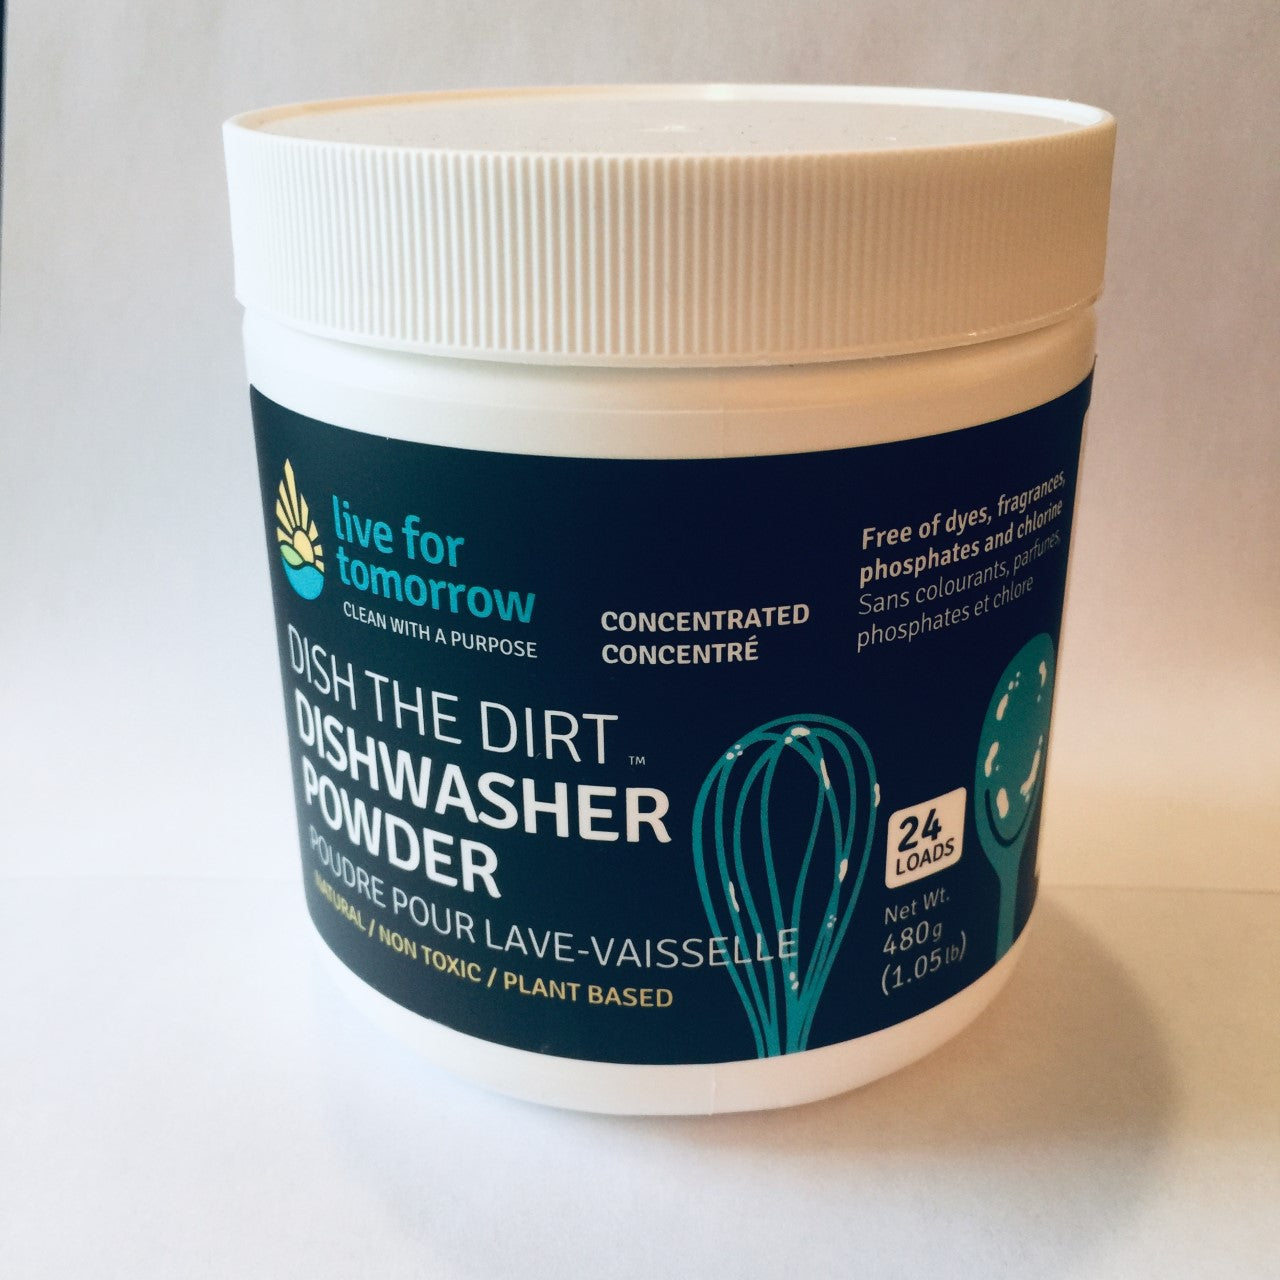 LFT Dishwasher Powder Unscented -480g I 1.05 lb, 24 loads